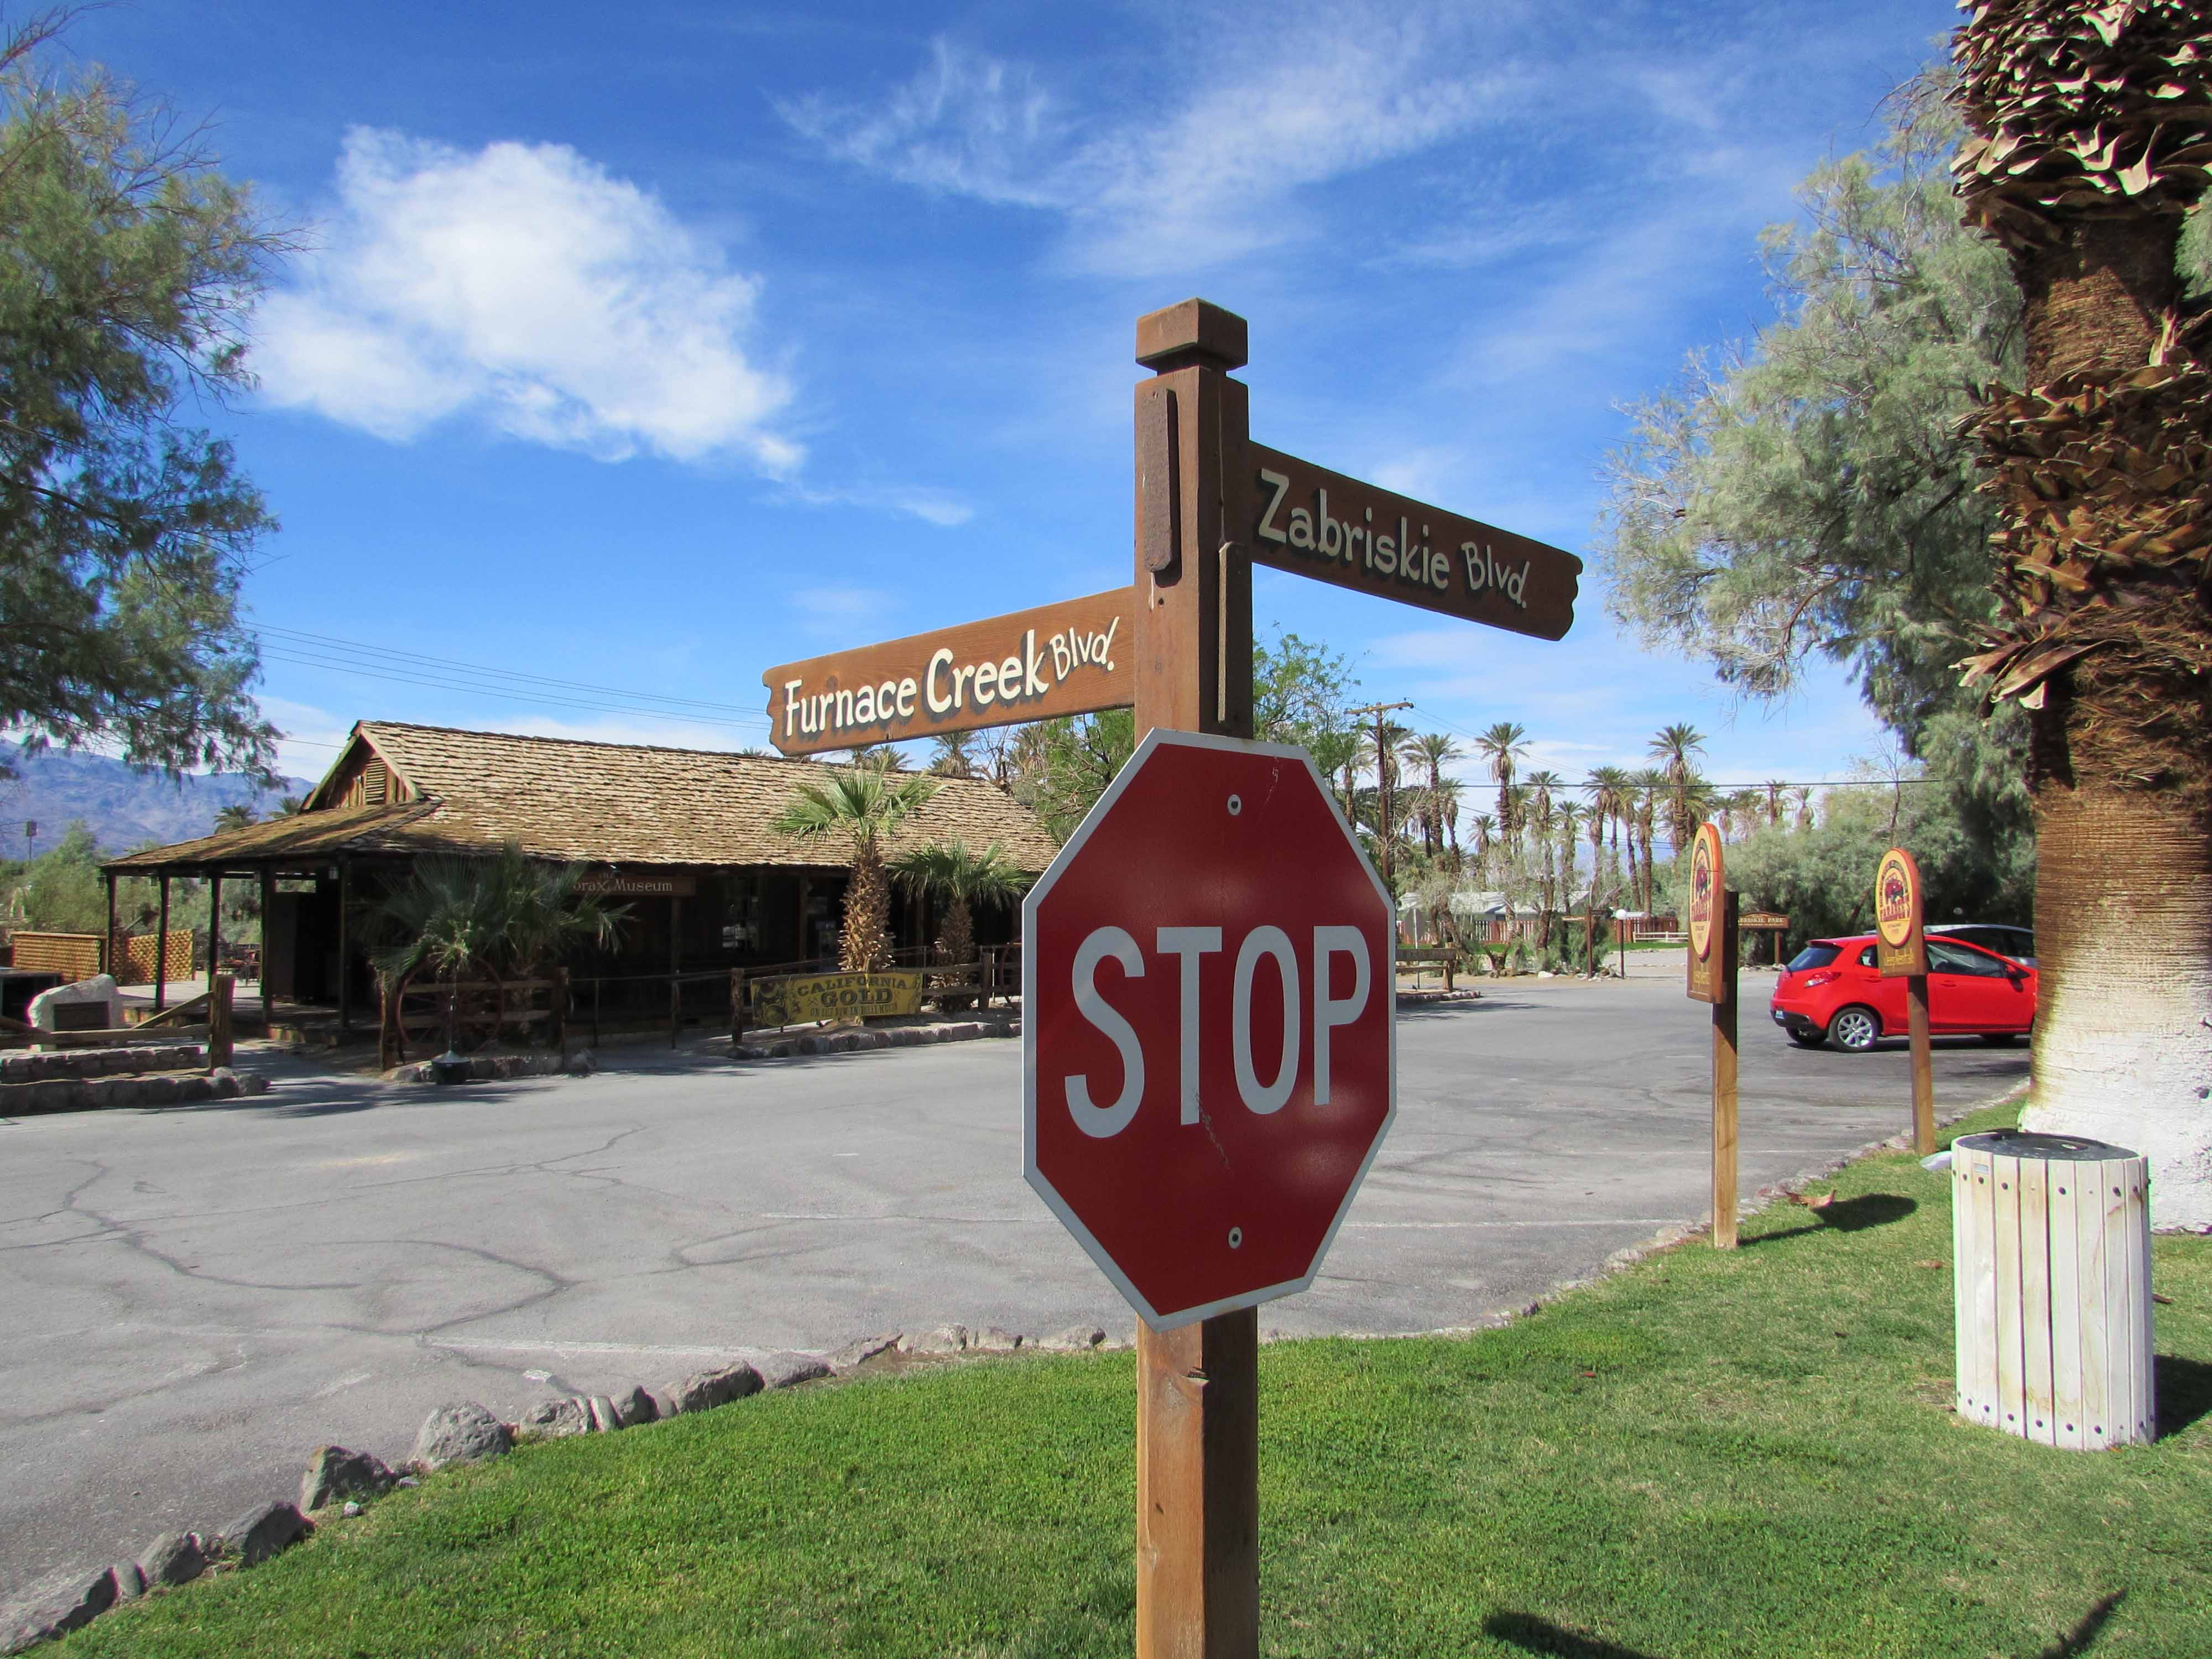 Furnace Creek Street Signs and the Borax Museum